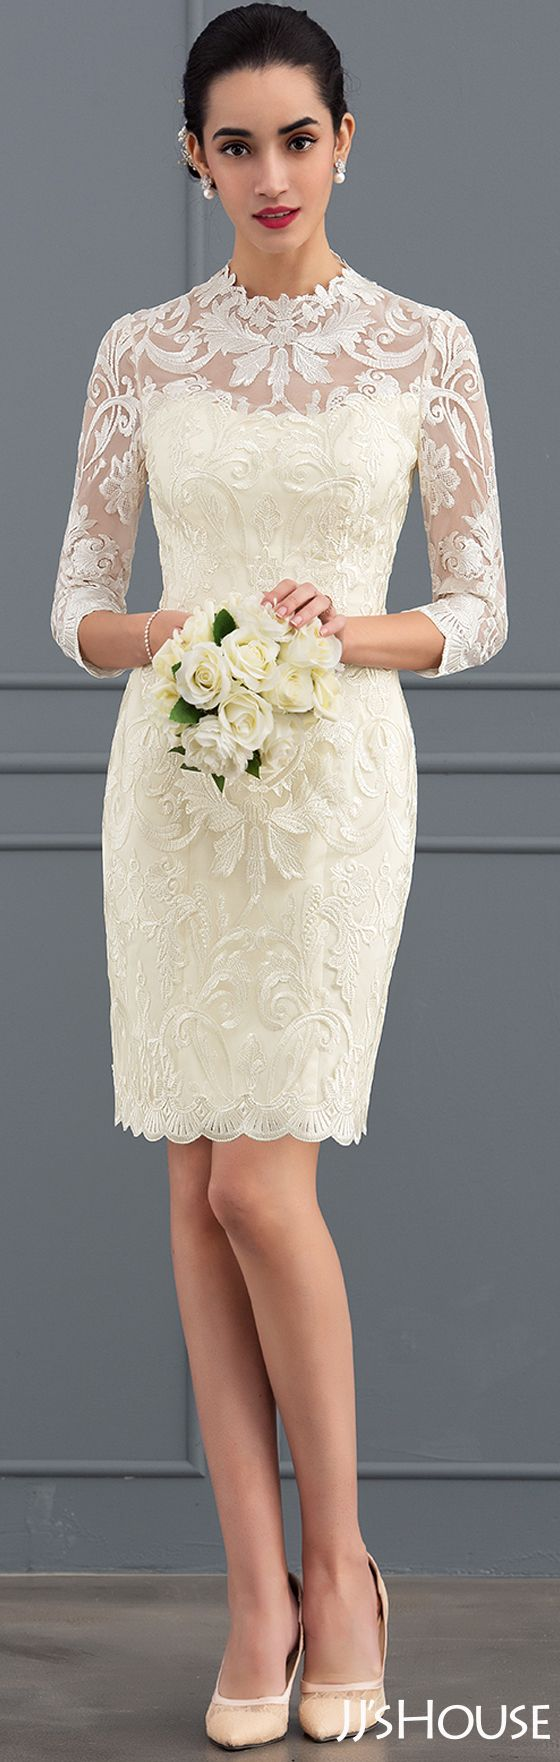 This sheath wedding dress is excellent jjshouse wedding looks